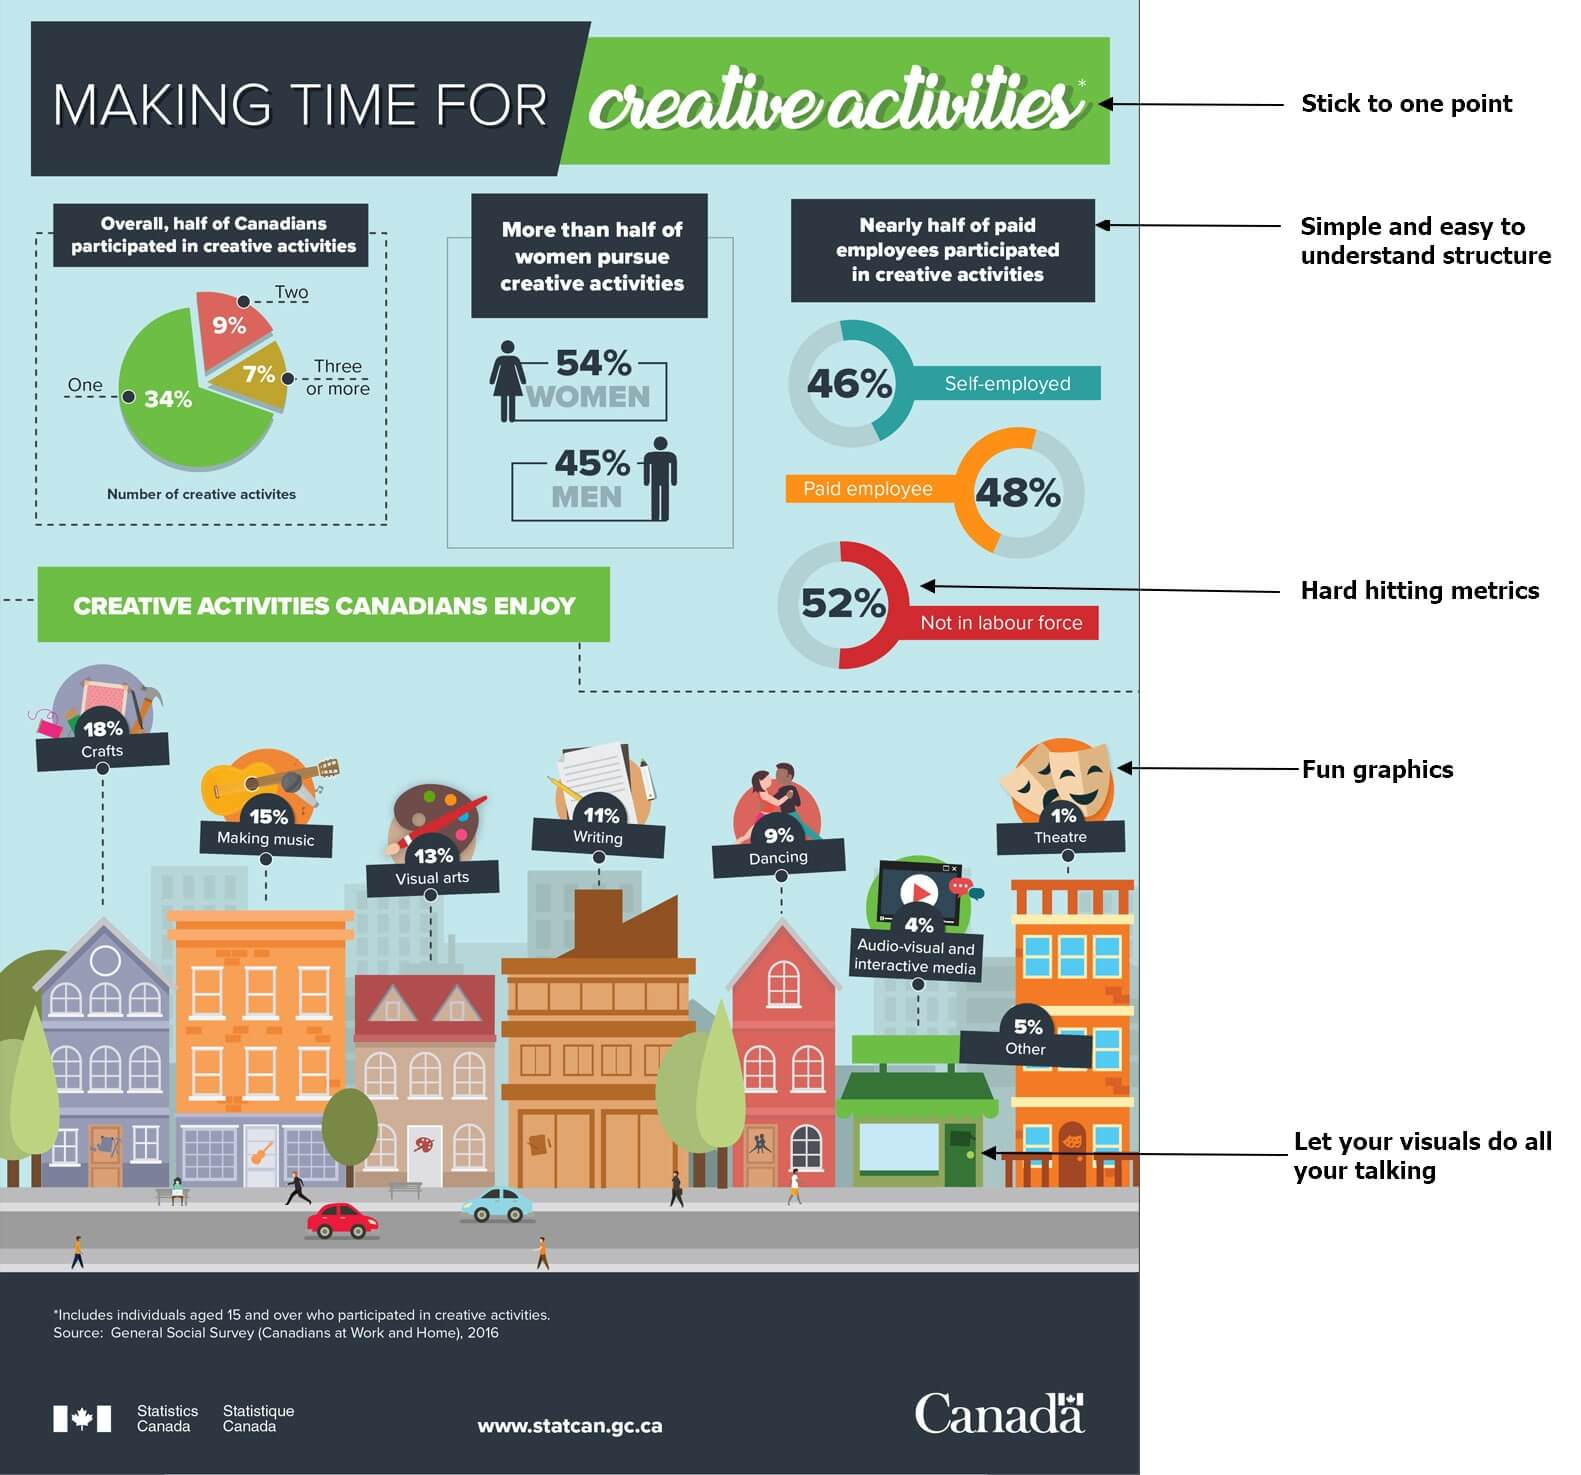 Essential elements of infographic explained